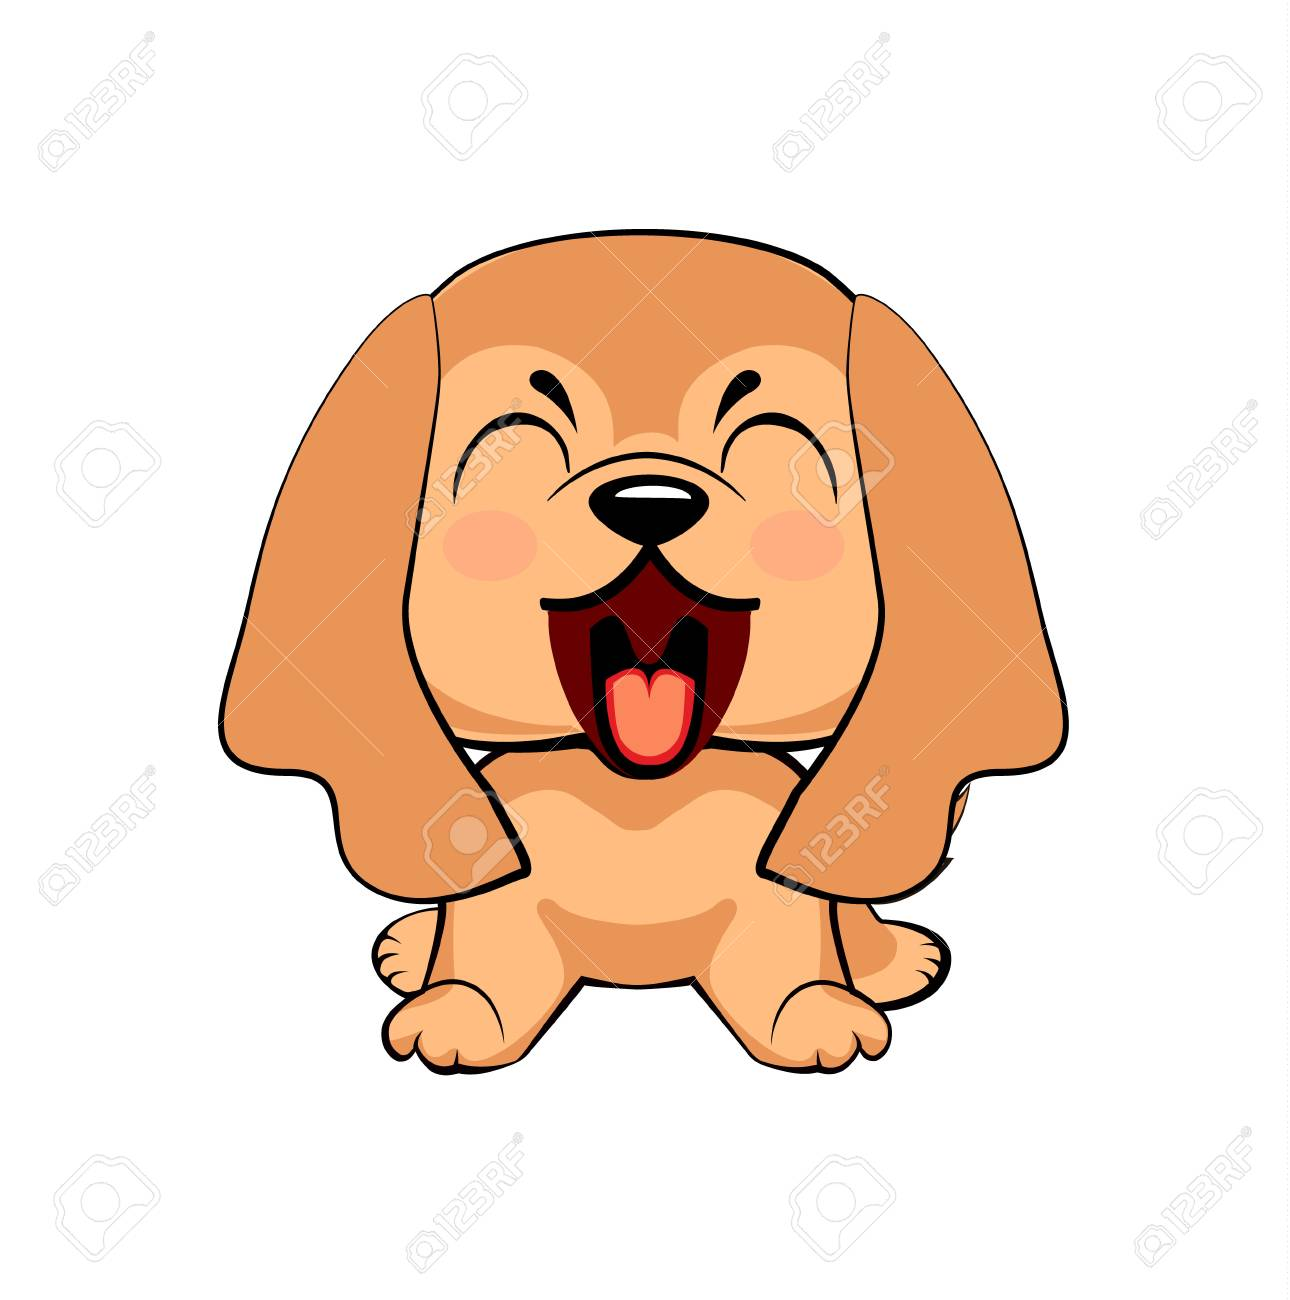 English Cocker Spaniel Dog Puppy Character With Open Mouth Royalty Free Cliparts Vectors And Stock Illustration Image 108408073